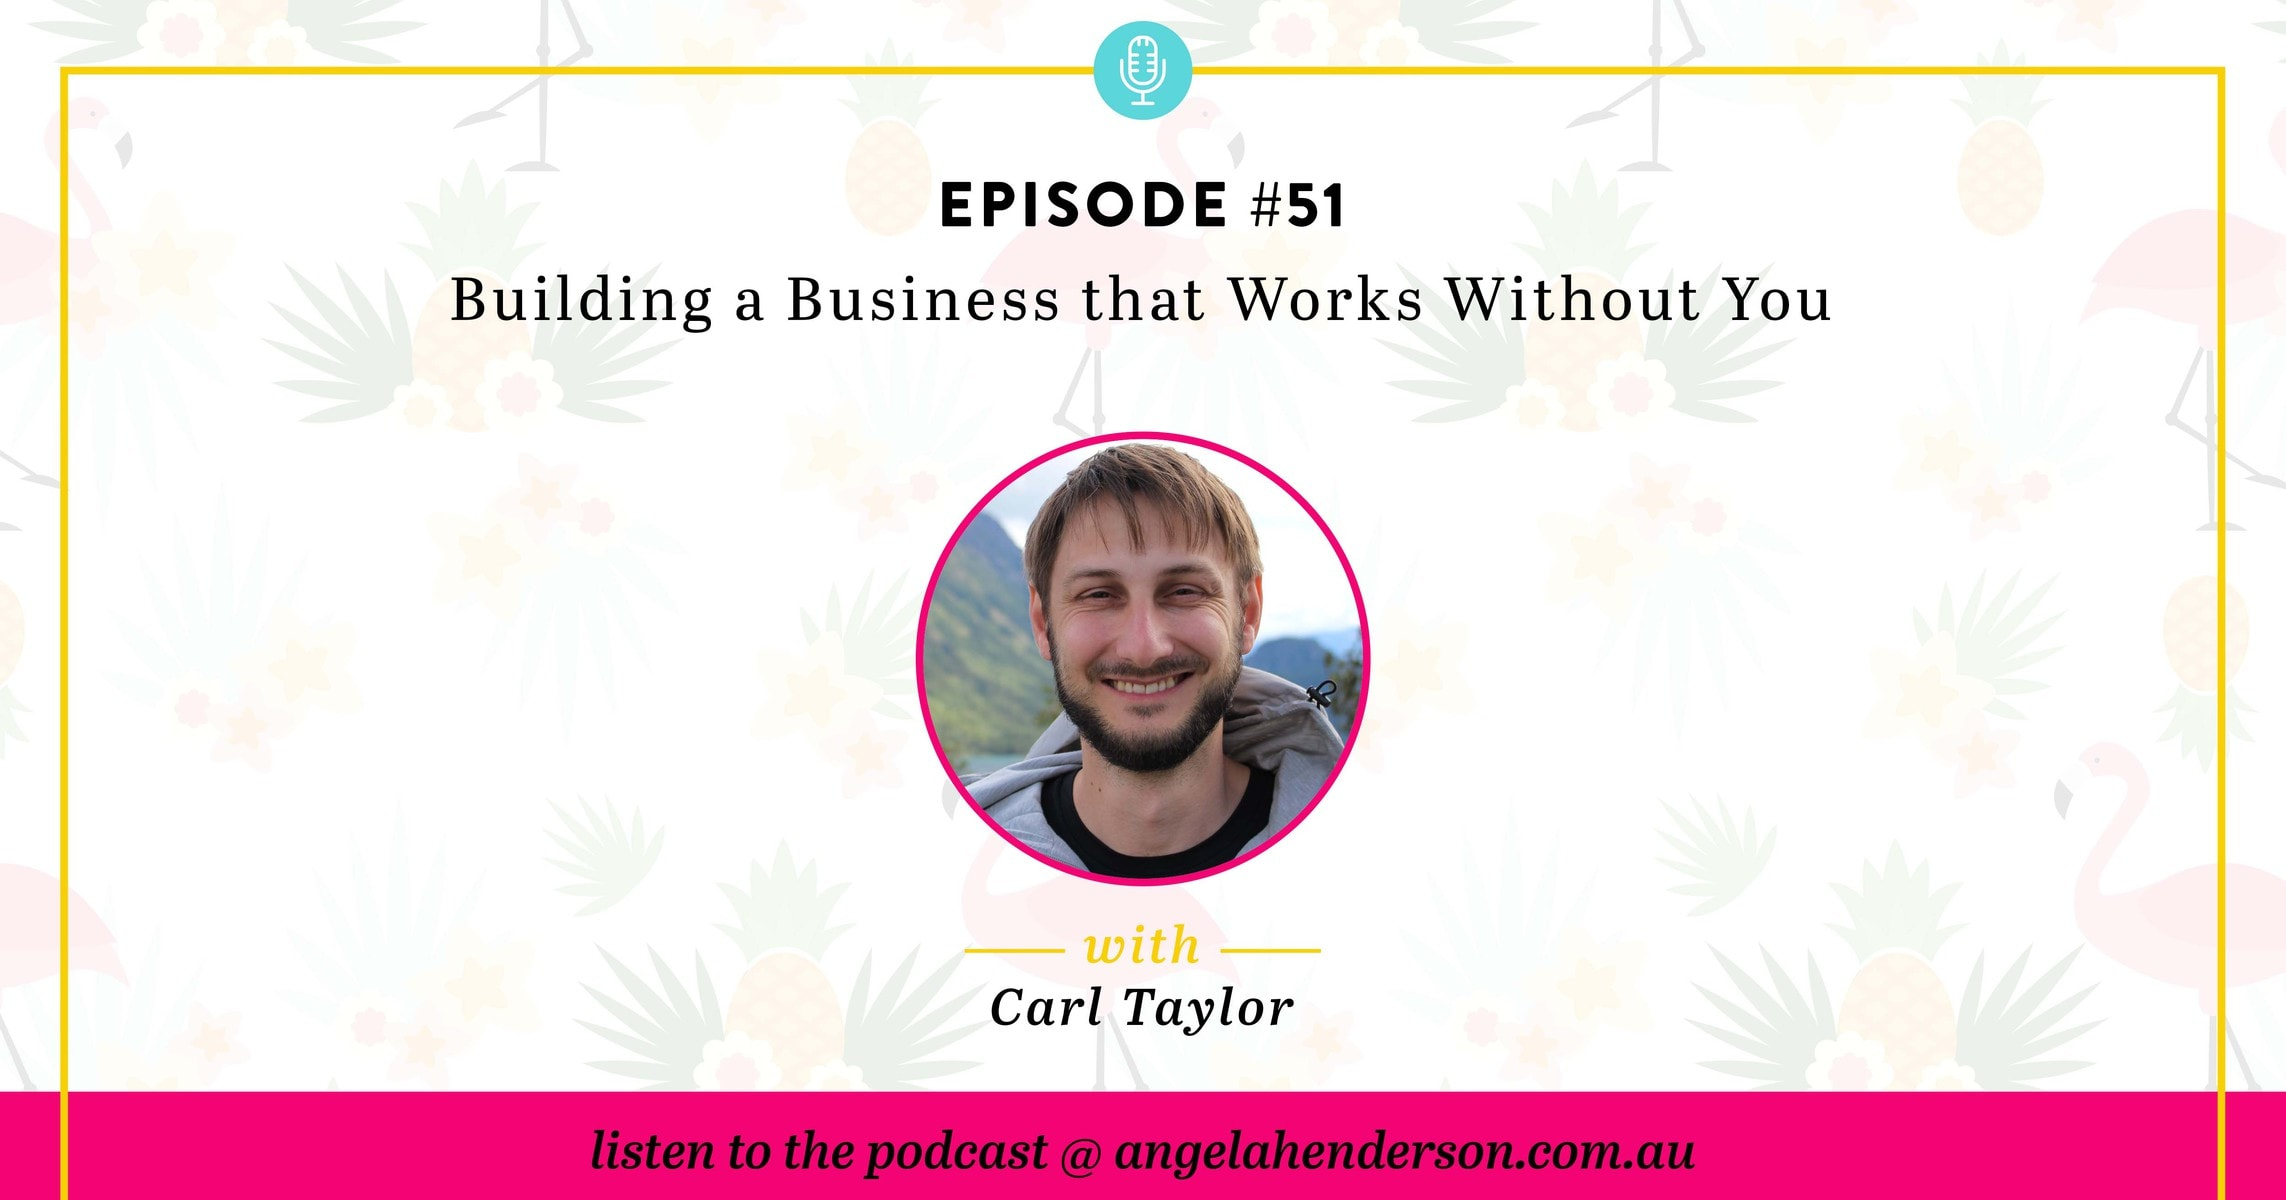 Building a Business that Works Without You